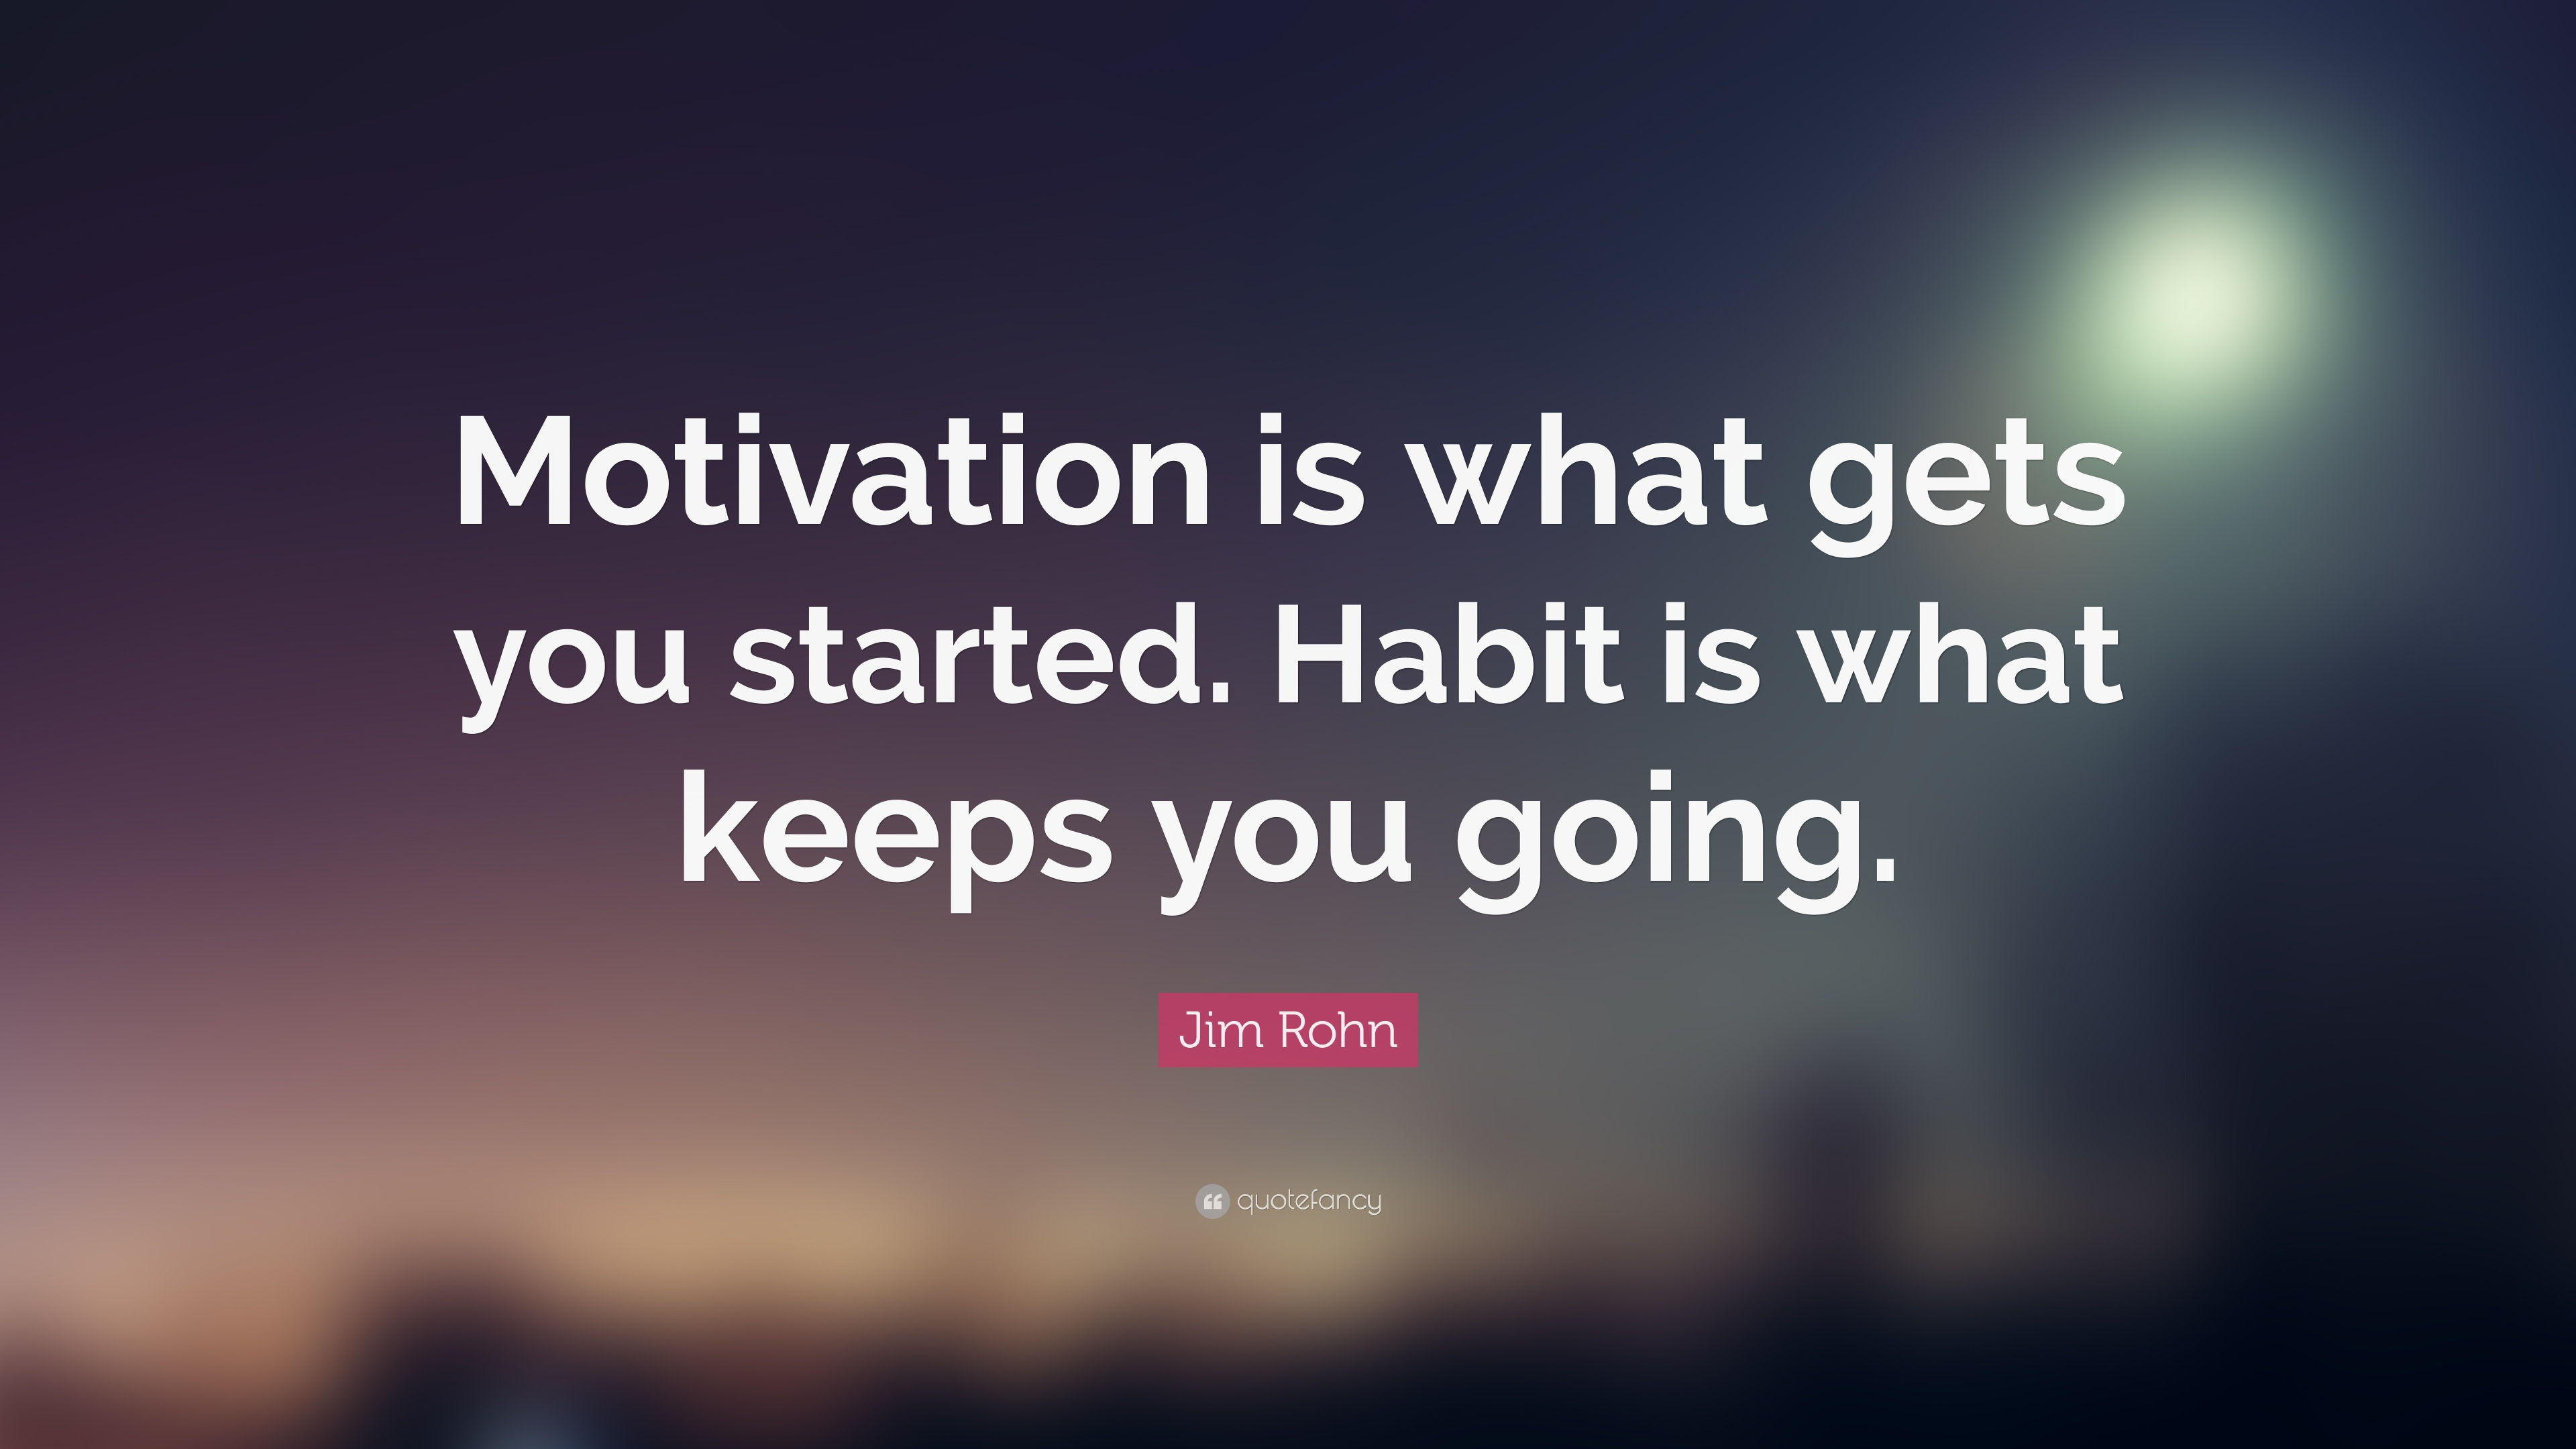 describe what is motivating jim goodnight James howard goodnight (born january 6, 1943) is an american billionaire  businessman and  hsm global described goodnight's leadership style in a  framework of three pillars: help employees do their best work by keeping them.